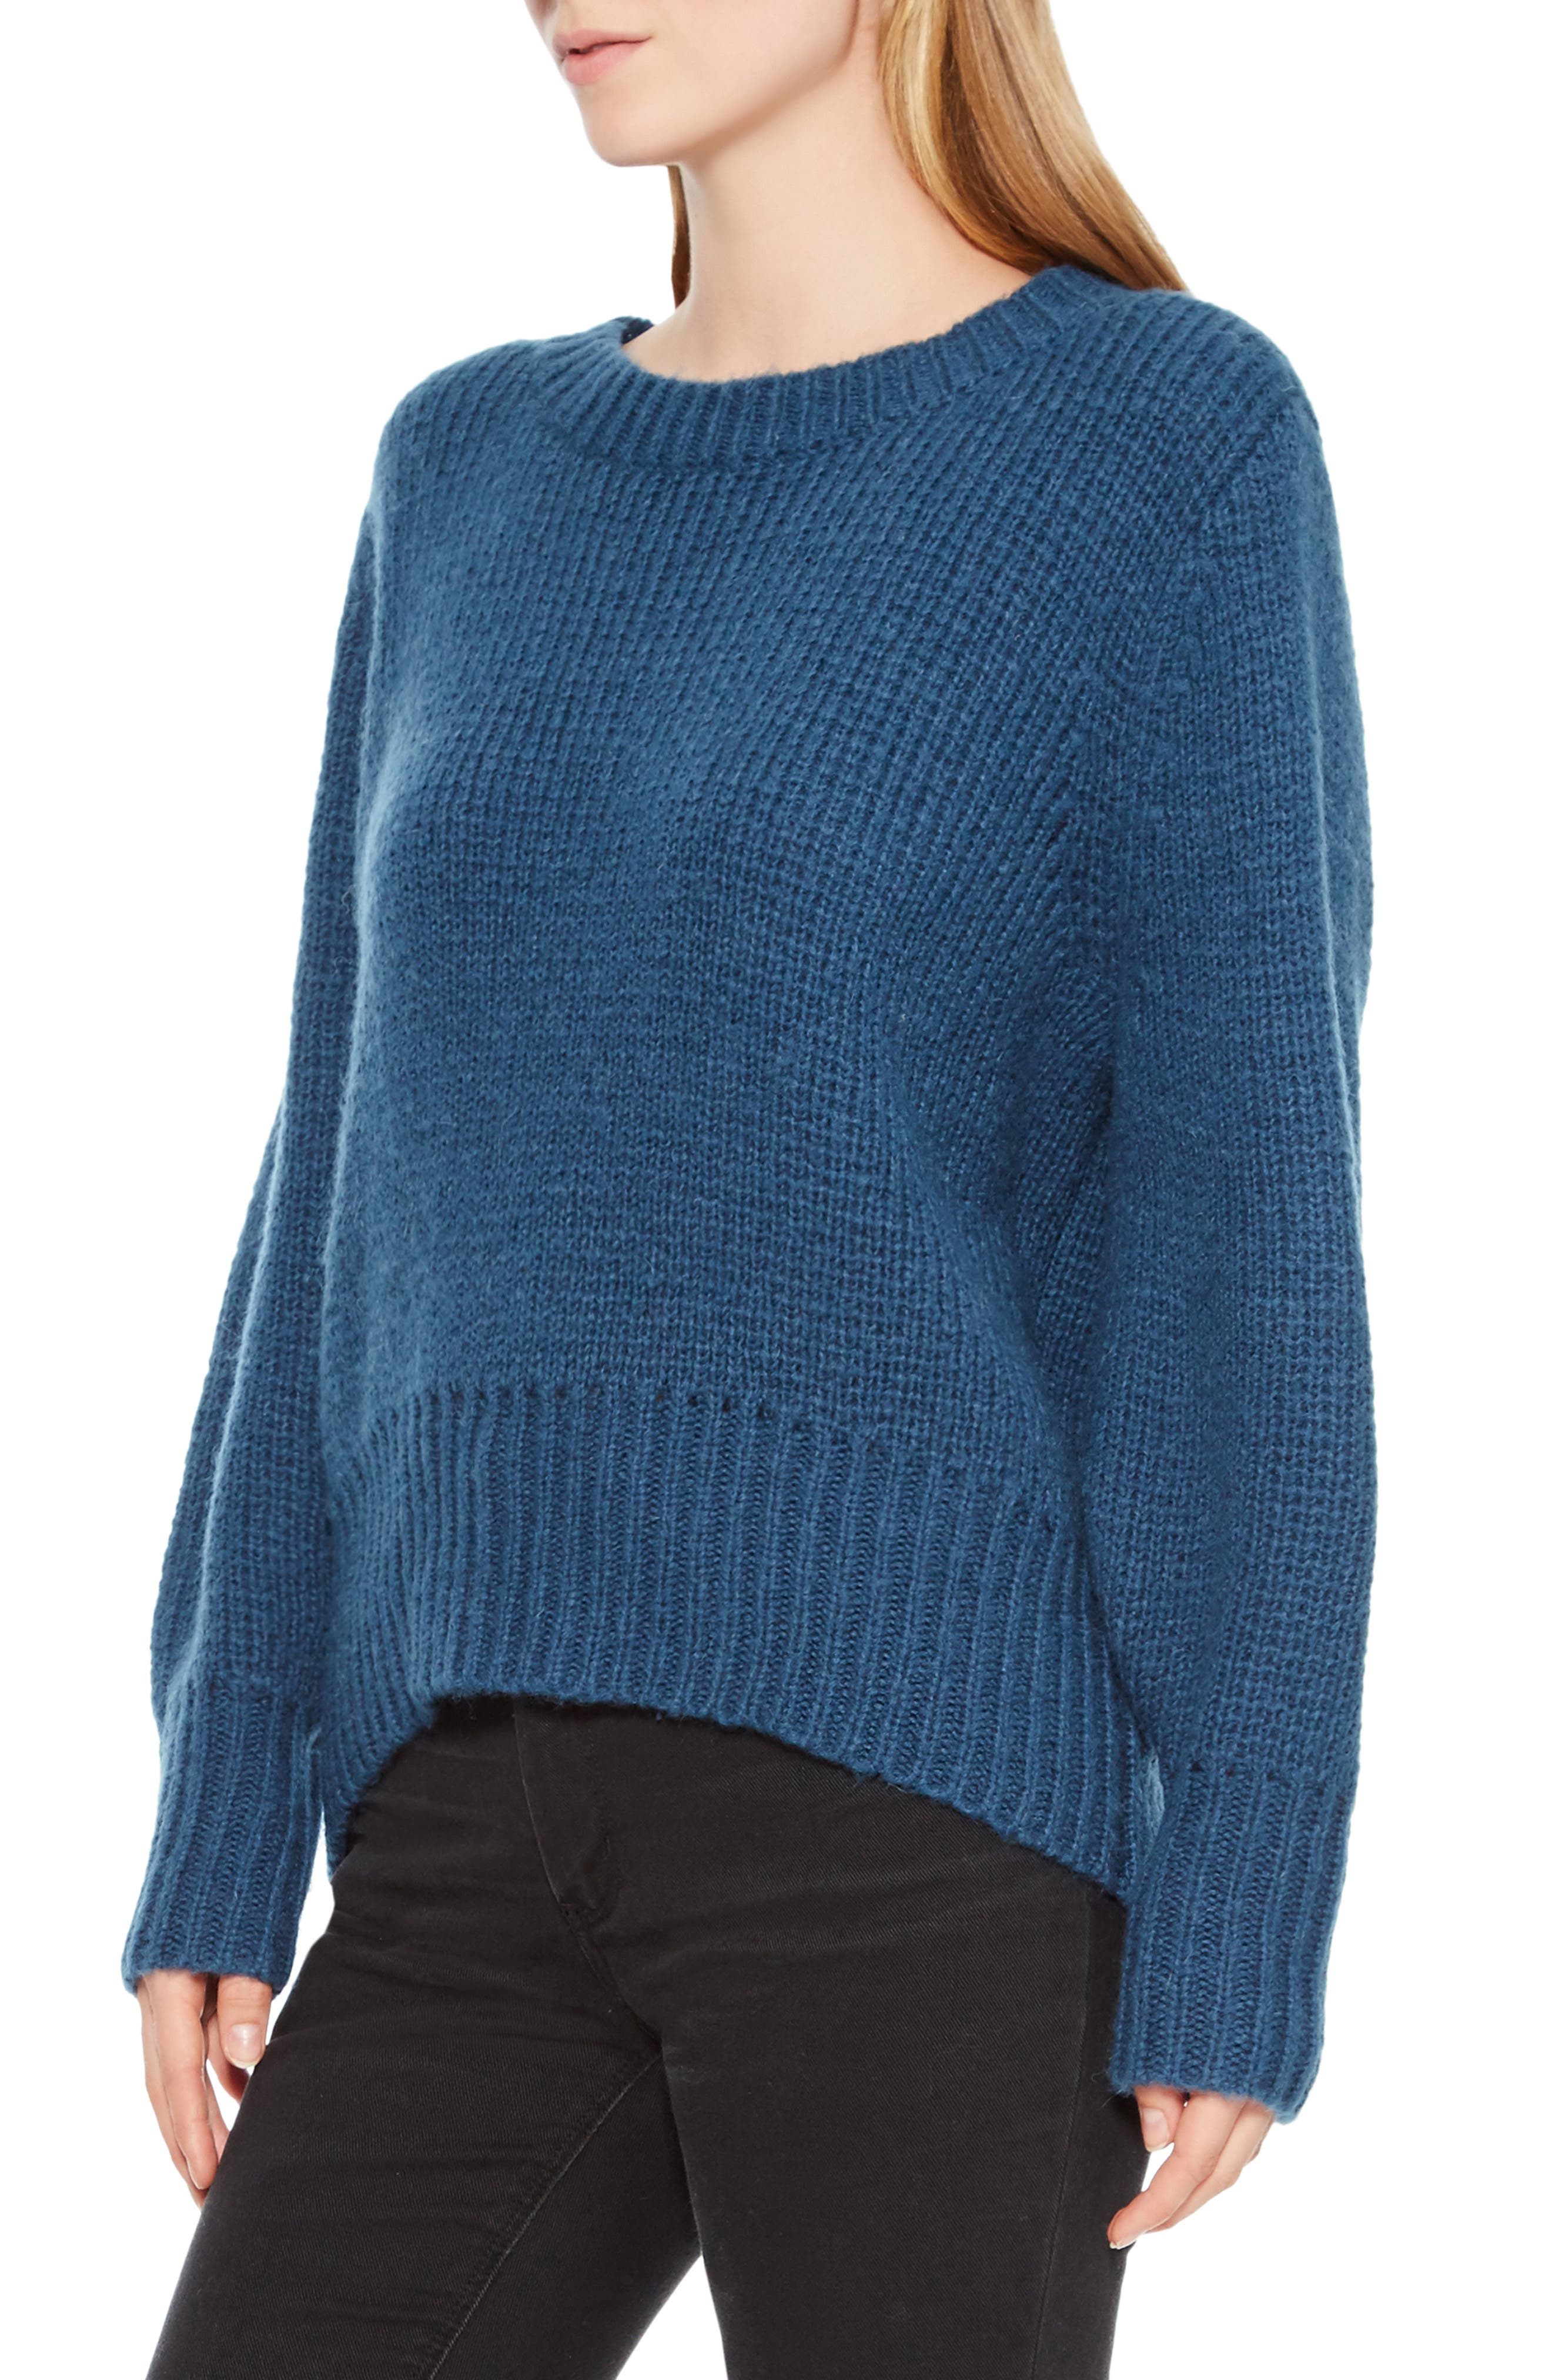 Matty Bow Back Sweater,                             Alternate thumbnail 3, color,                             449